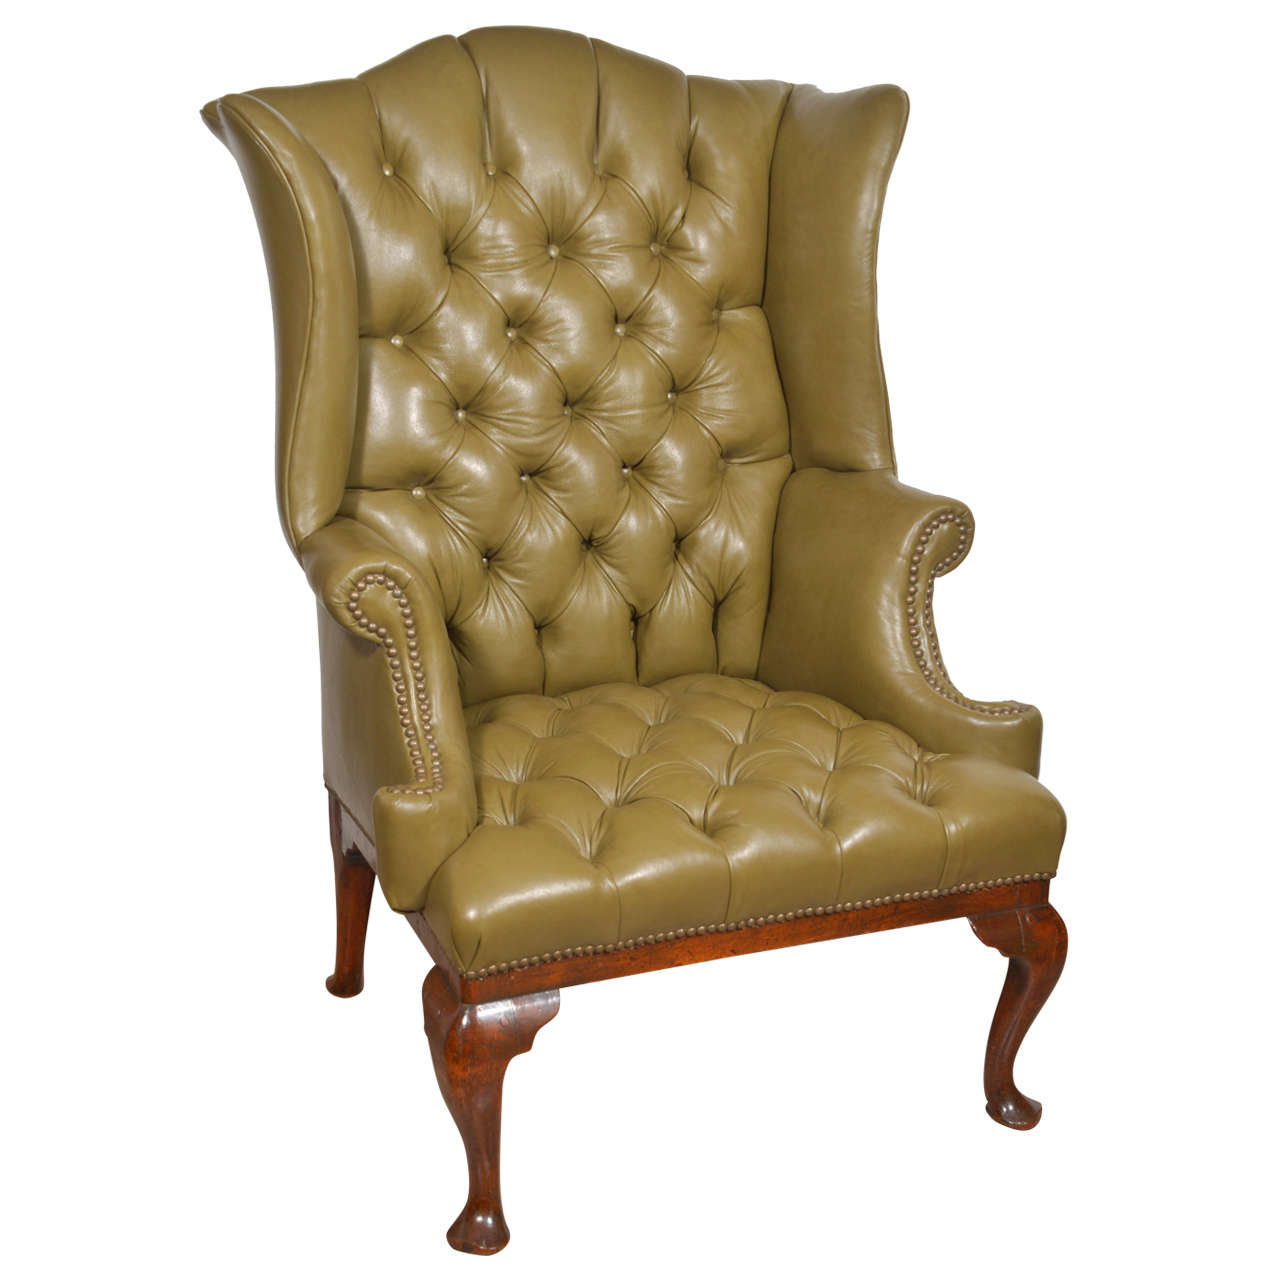 18th Century English Tufted Leather Queen Anne Wing Chair - Leather Queen Chair